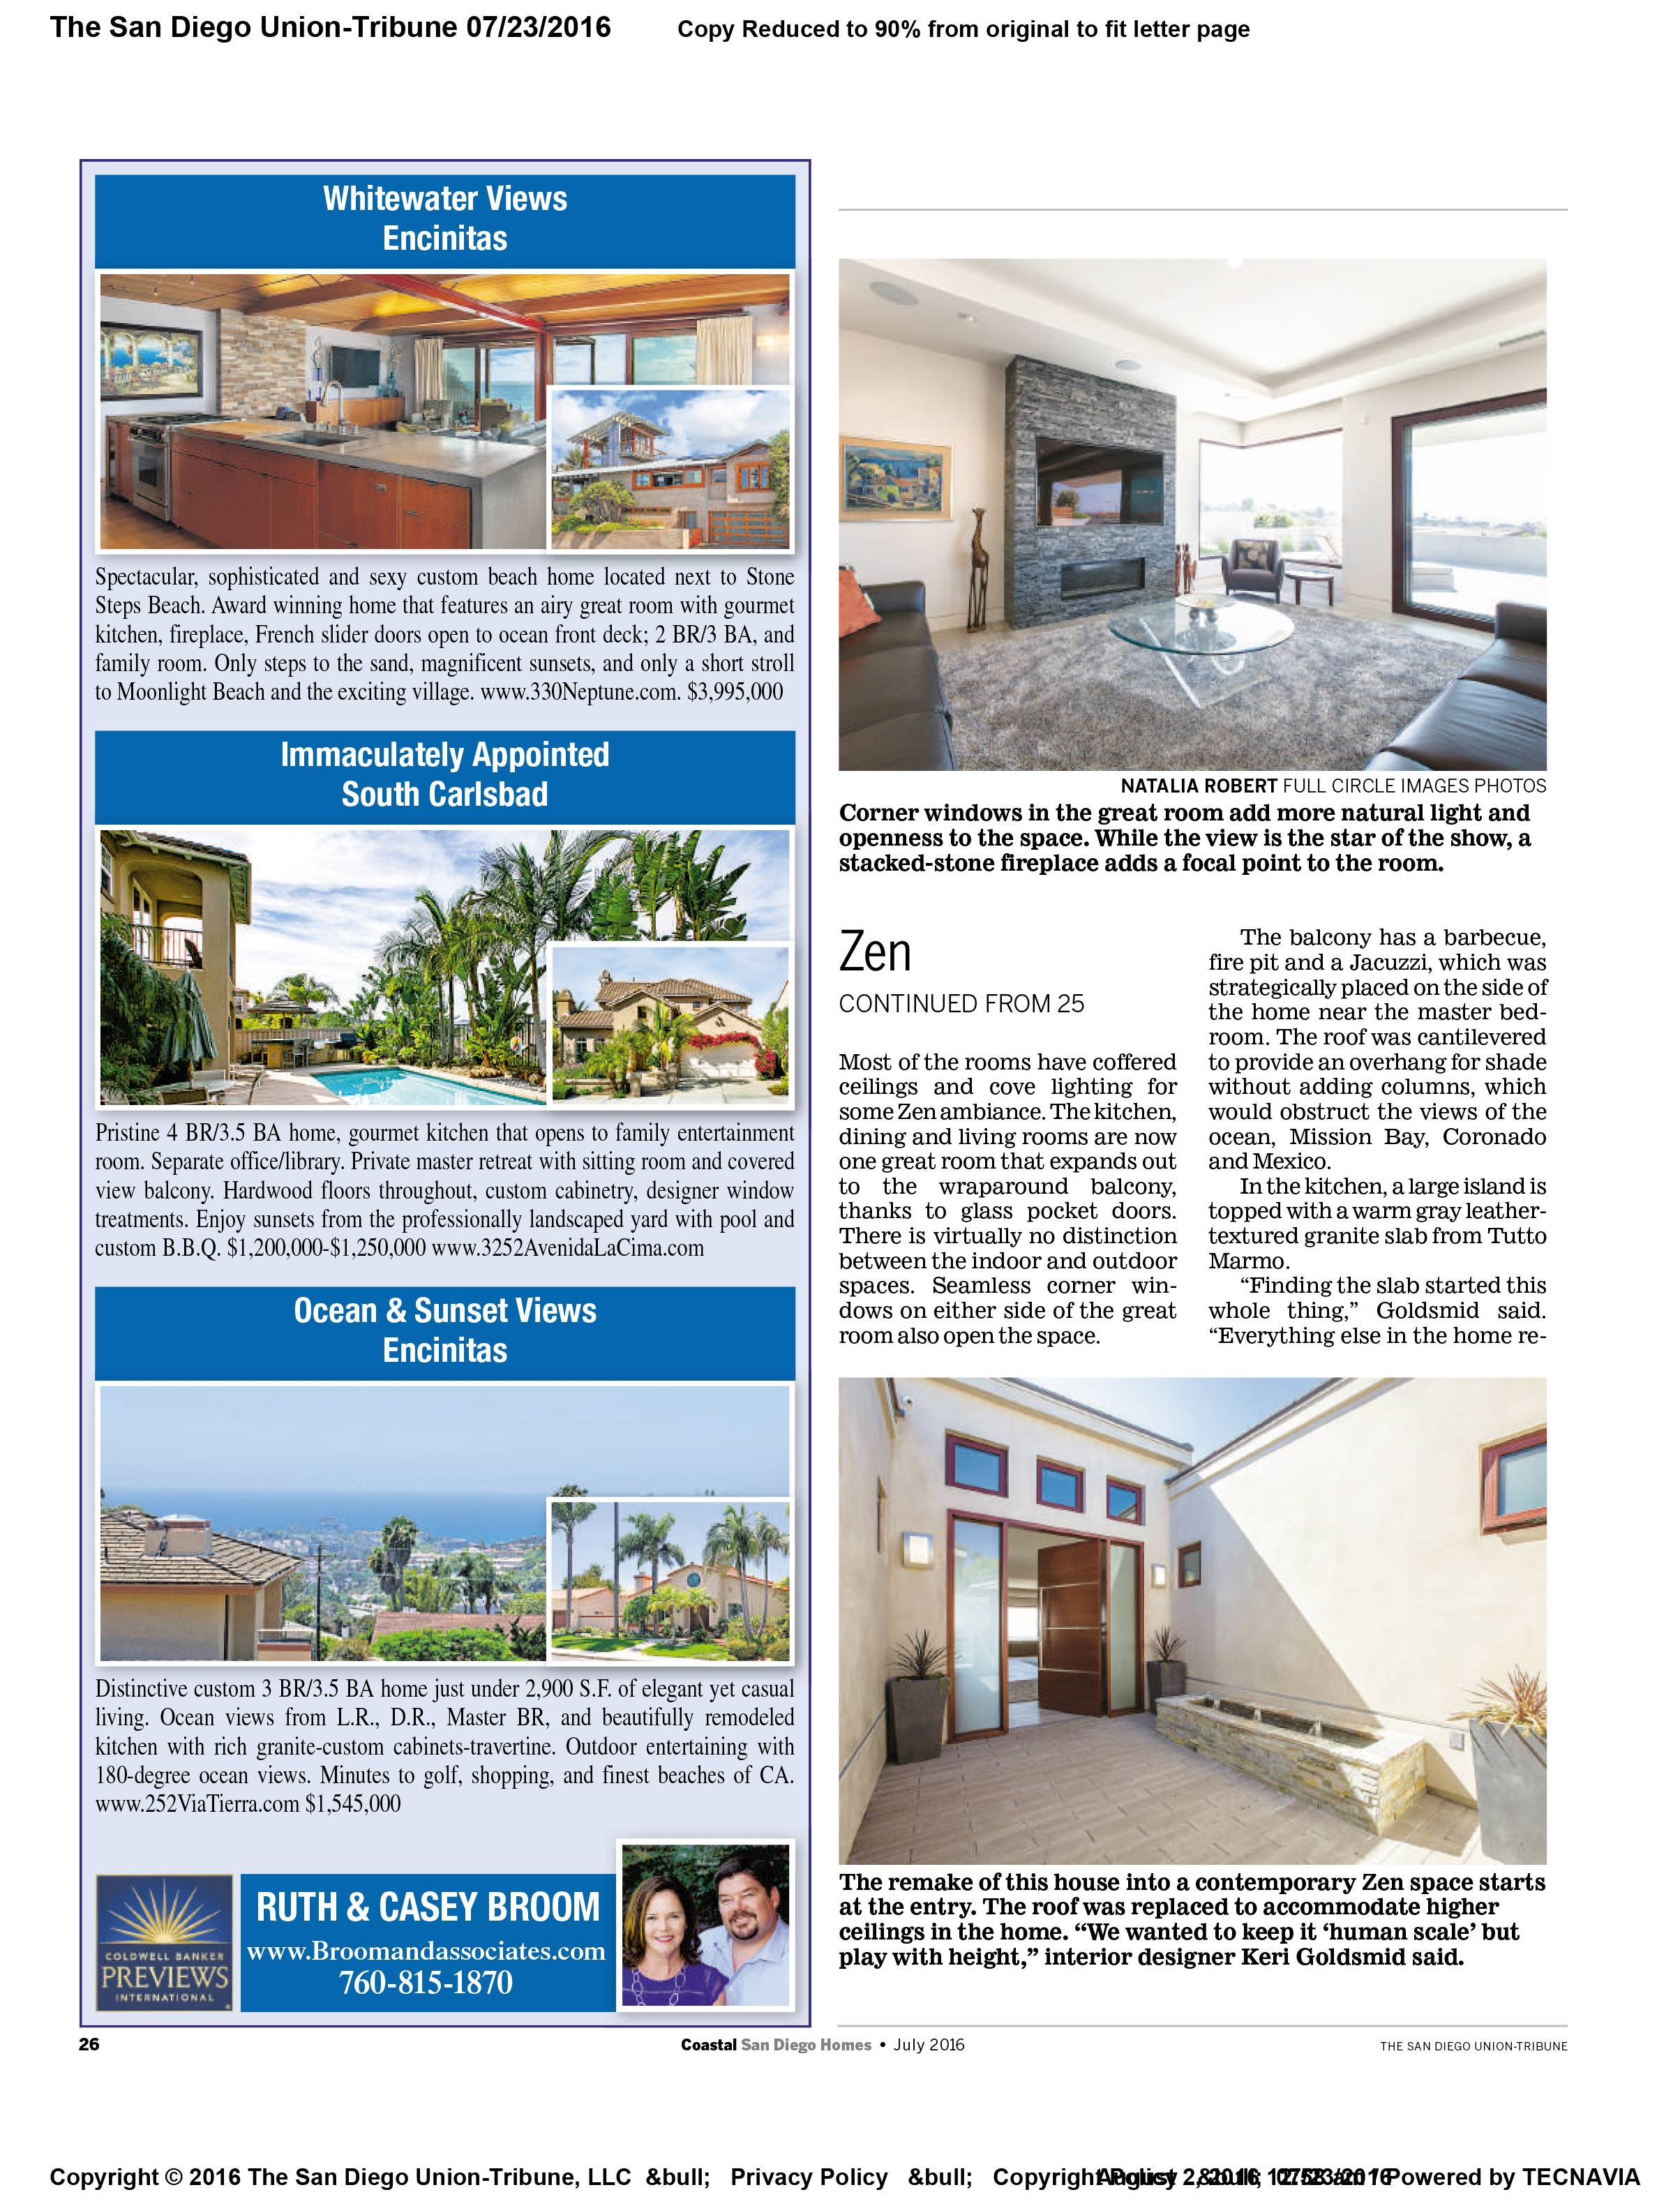 Coastal Homes - July 2016-2